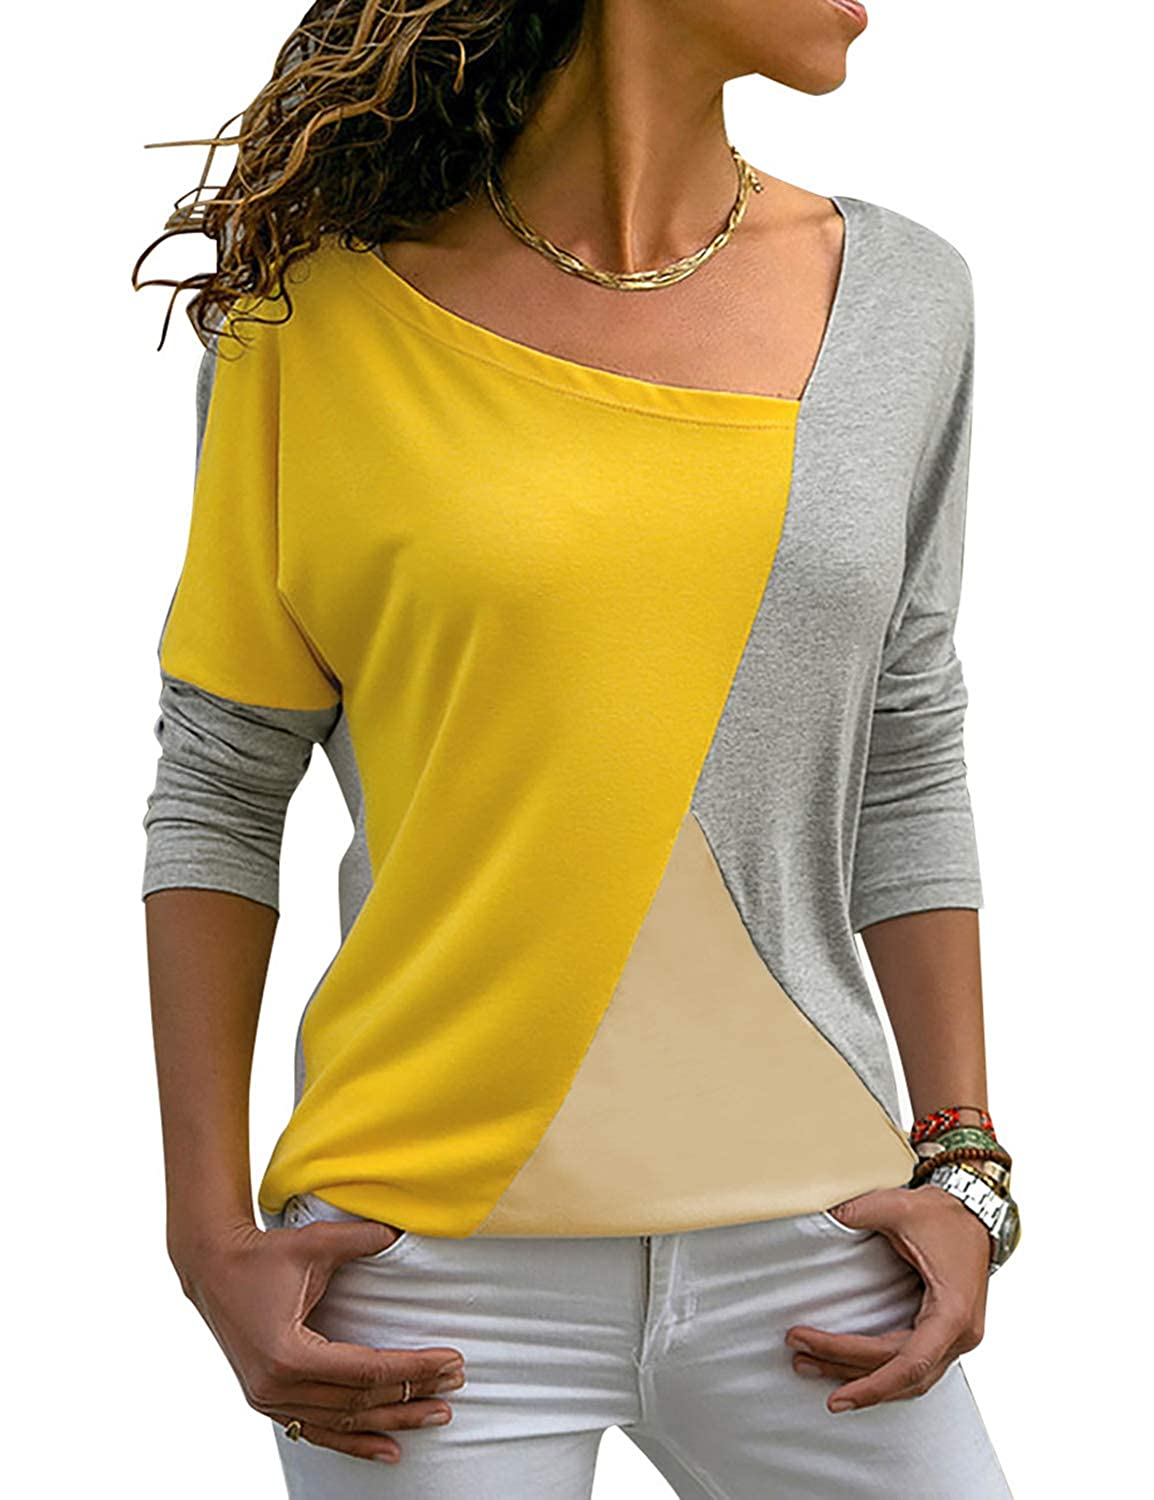 Yellow and bluee luvamia Women's color Block Blouse Casual Long Sleeve Shirt Tunic Top